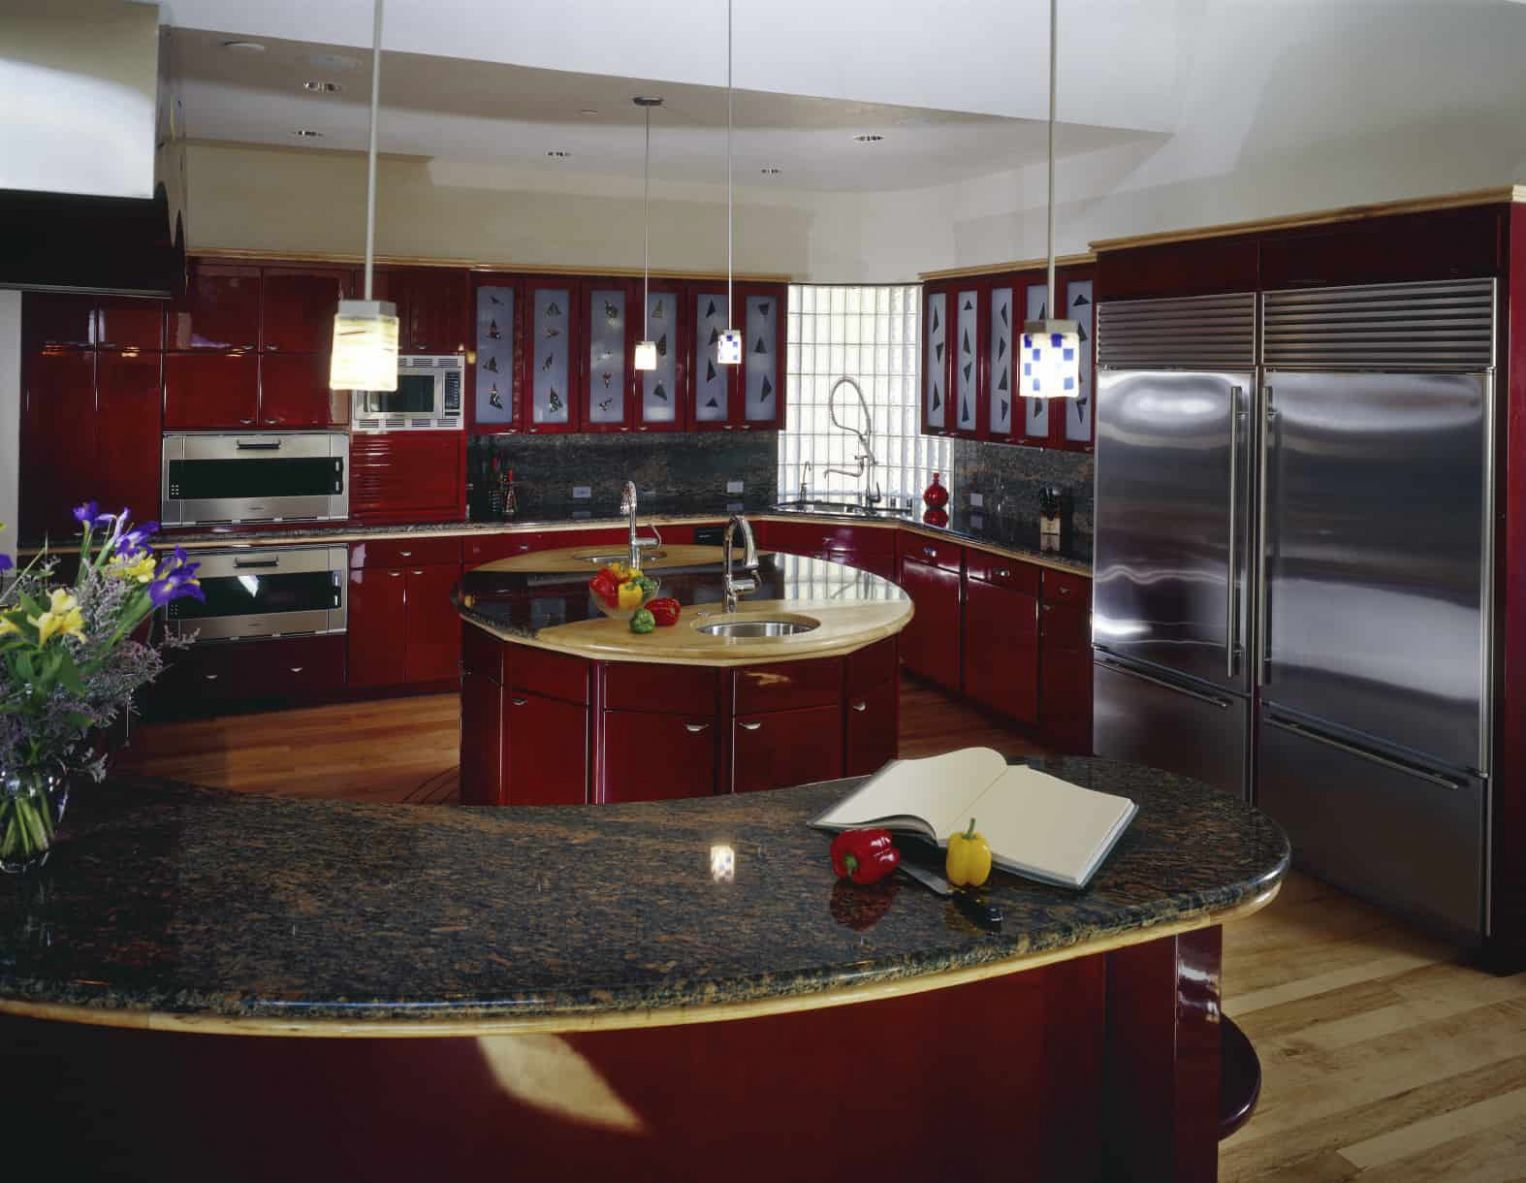 8 Red Kitchen Ideas with Red Cabinets (8 Photos)